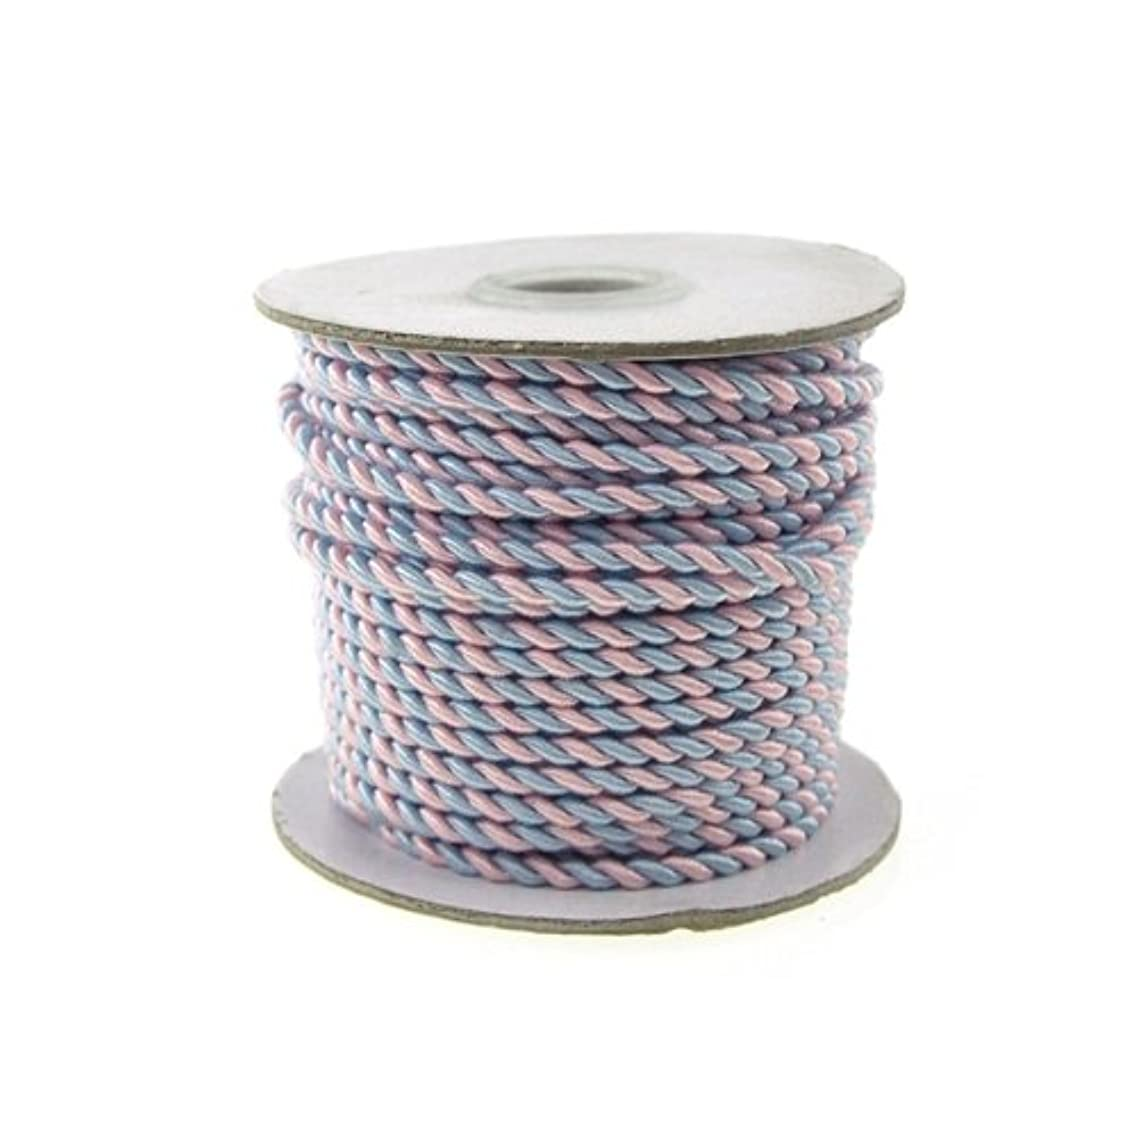 Homeford Firefly Imports Twisted Cord Rope 2-Ply, 3mm, 25 Yards, Pastel, Blue/Pink,